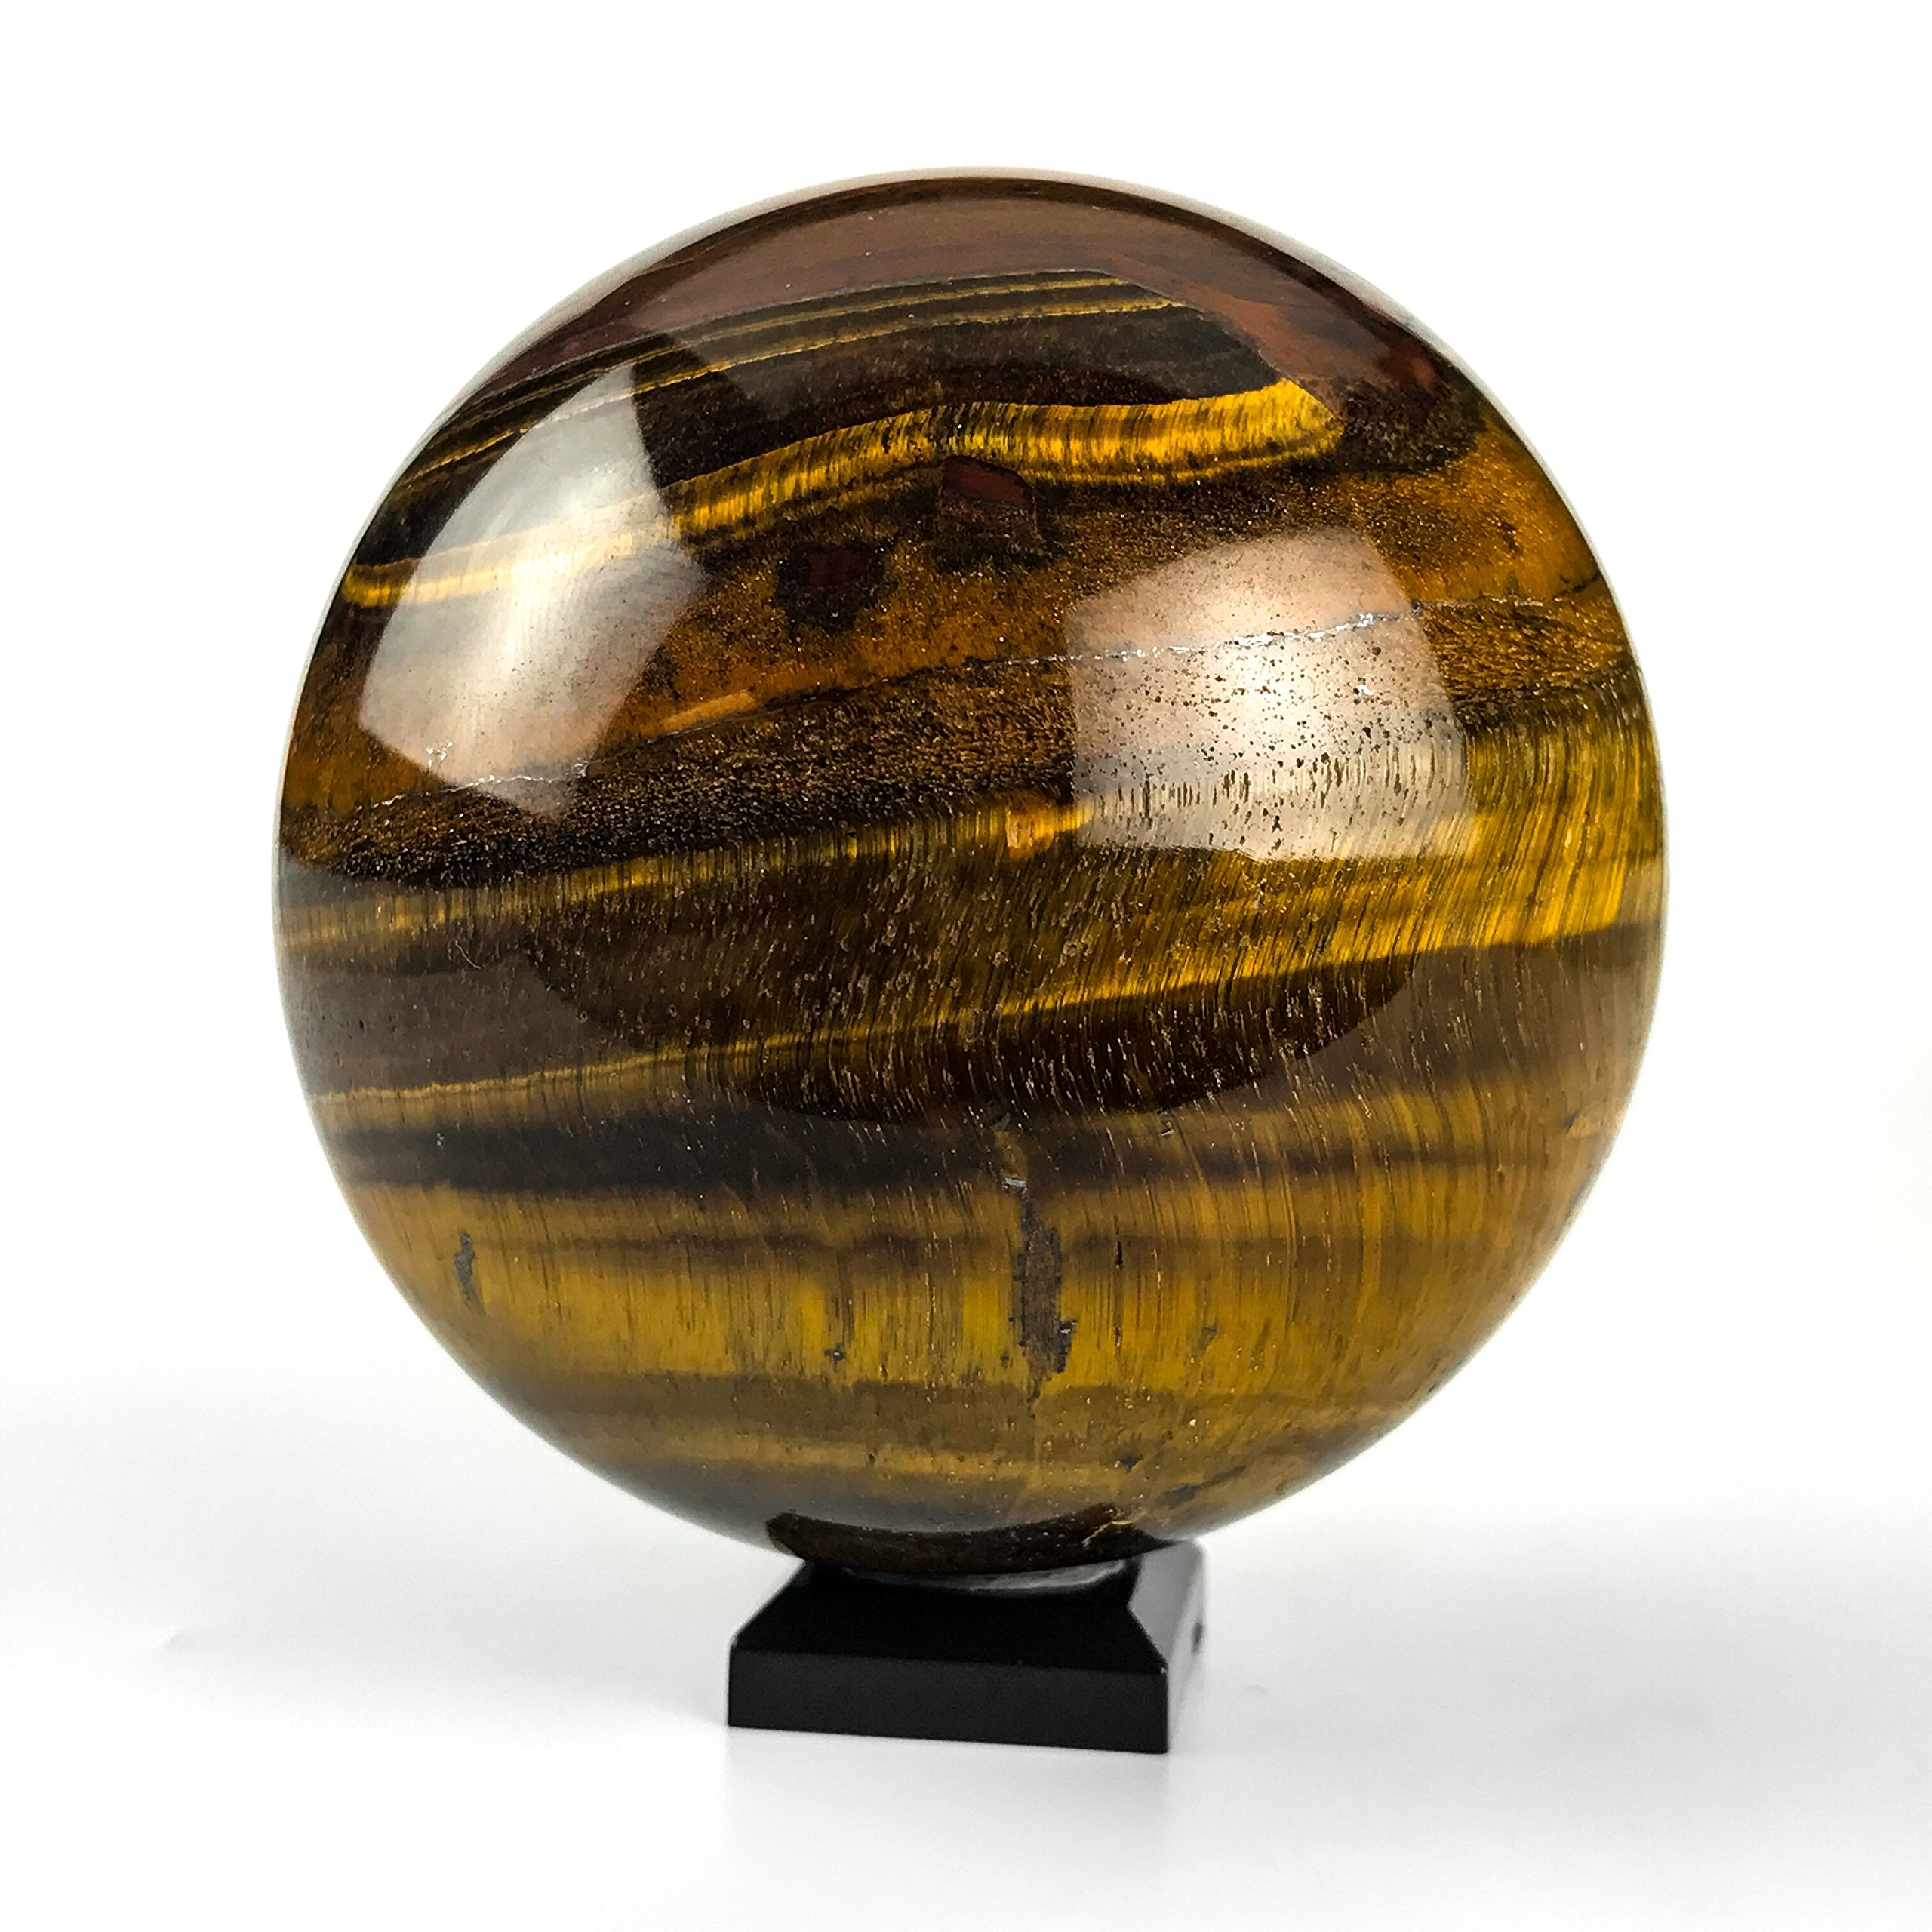 Astro Gallery Of Gems Polished Tiger Eye Sphere - 1. 15 LBS